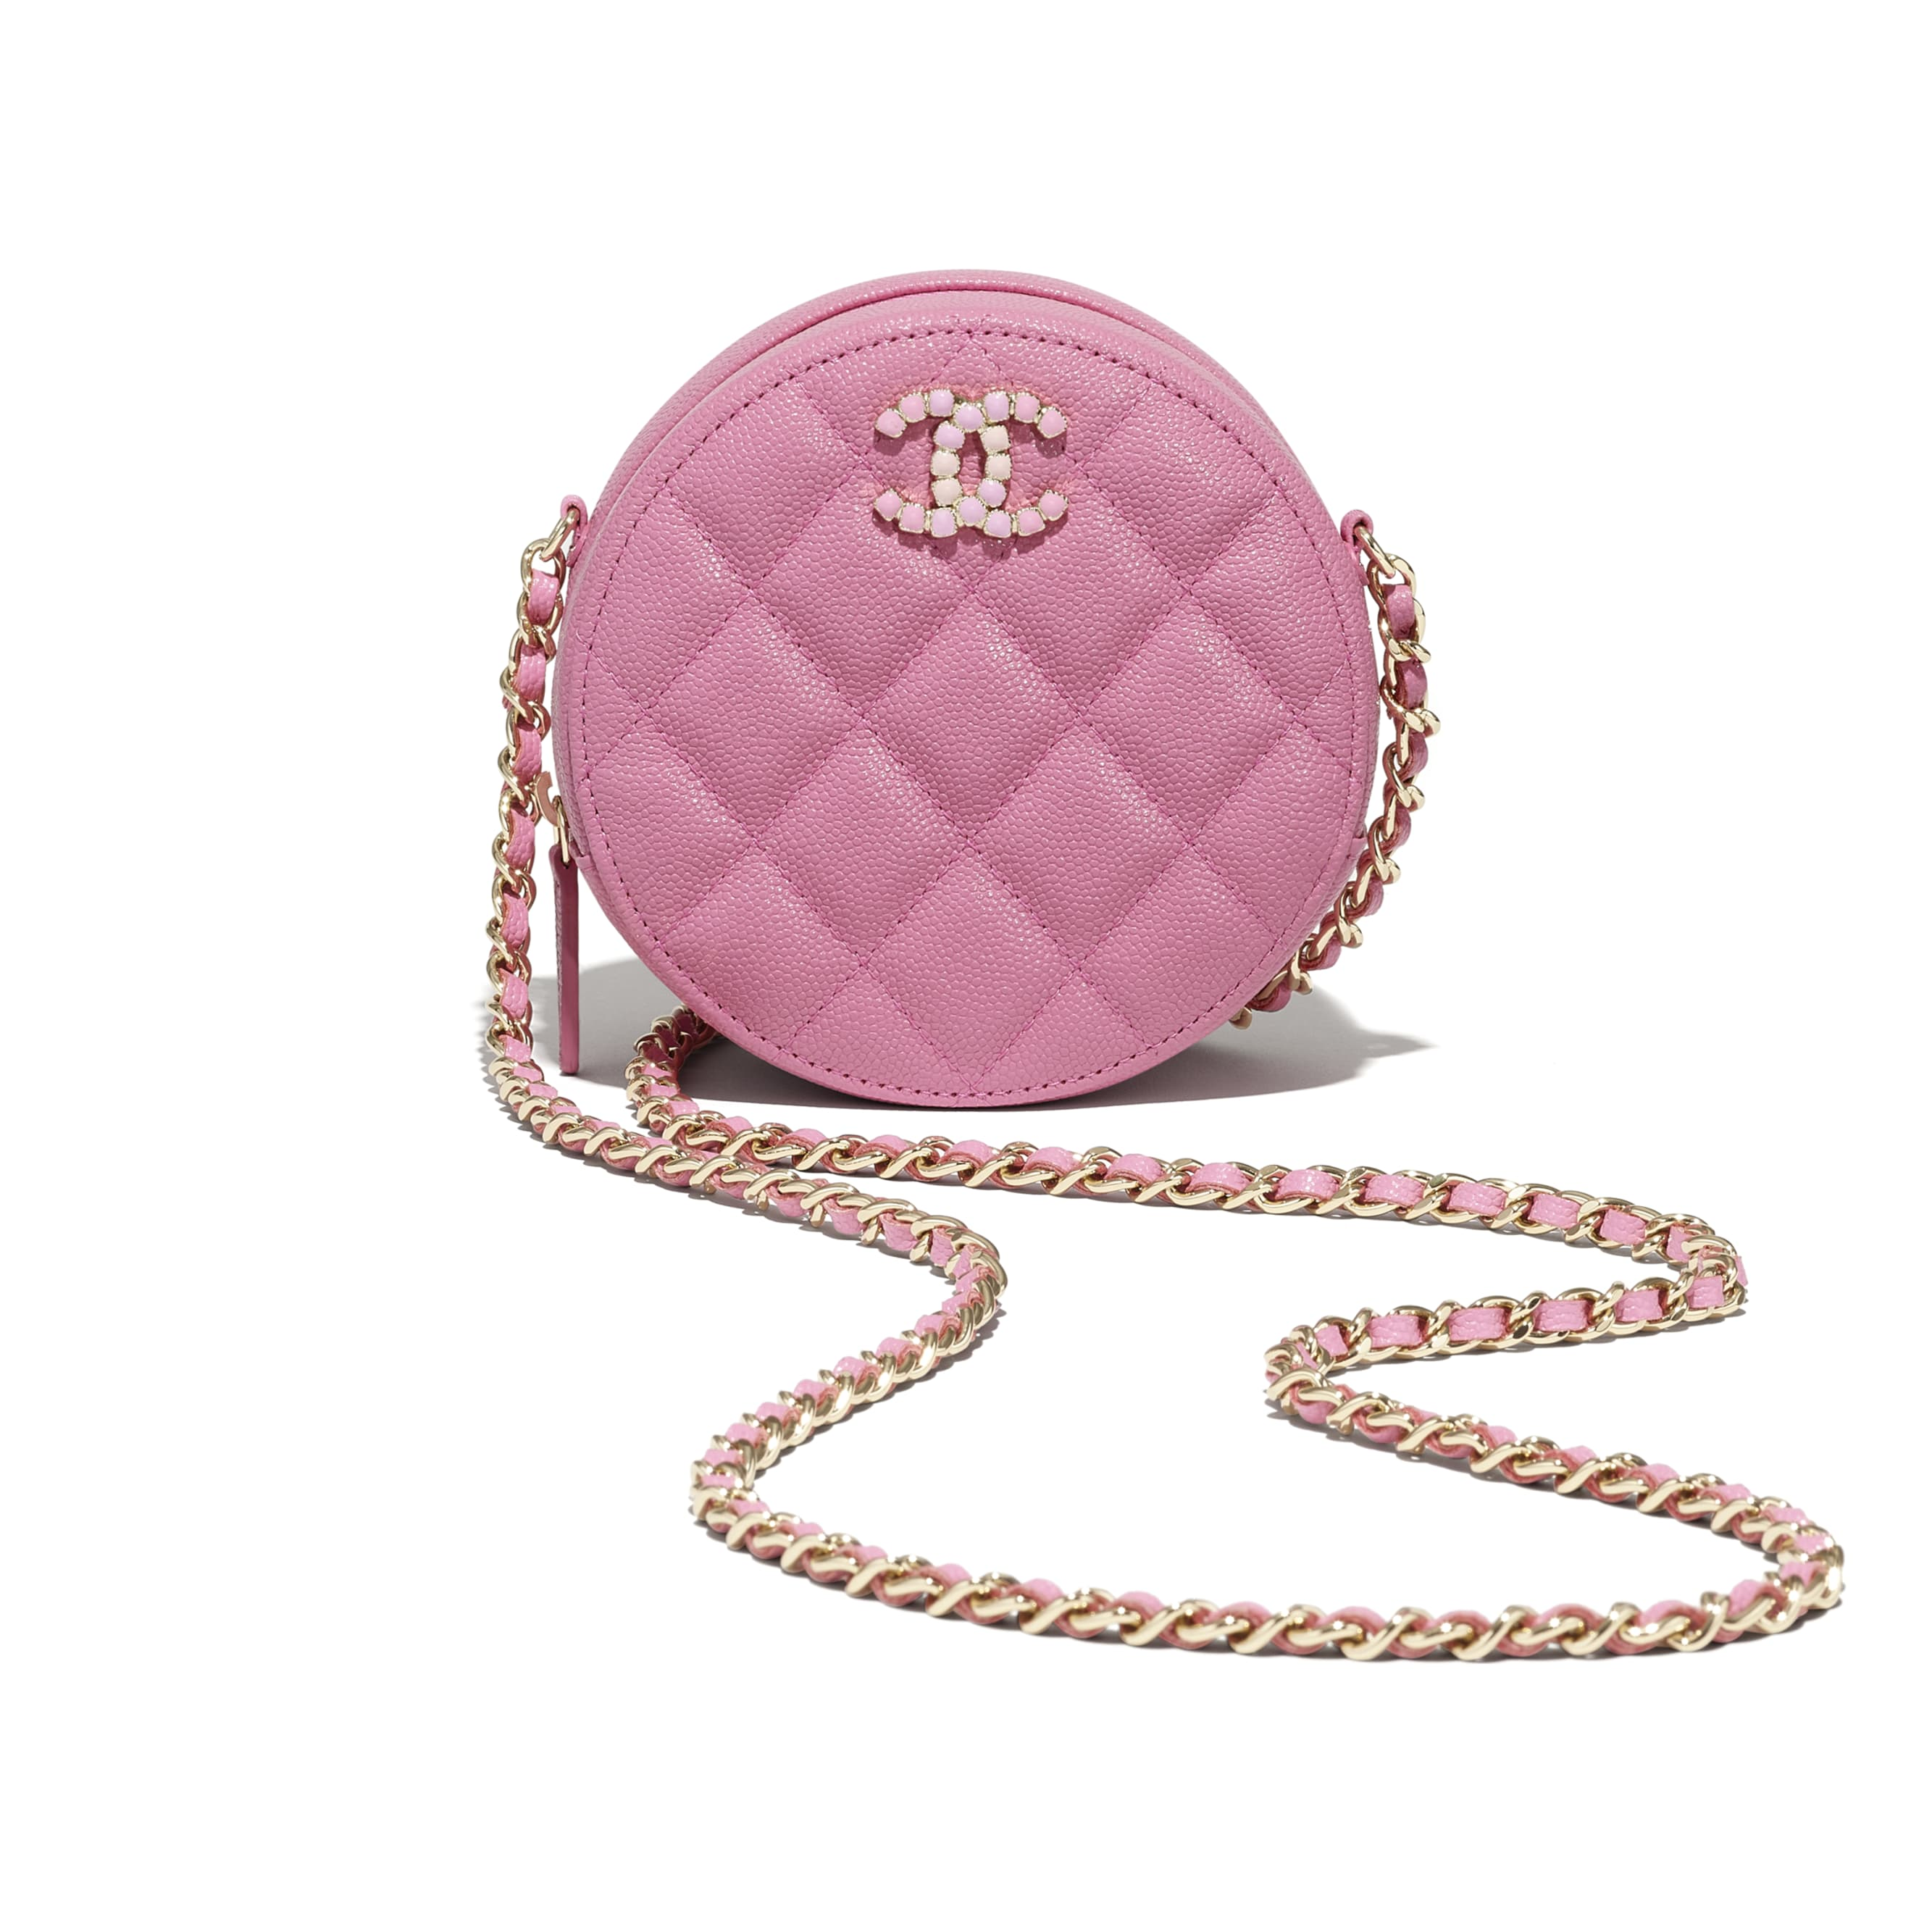 Clutch With Chain - Pink - Grained Calfskin & Laquered Gold-Tone Metal - CHANEL - Extra view - see standard sized version